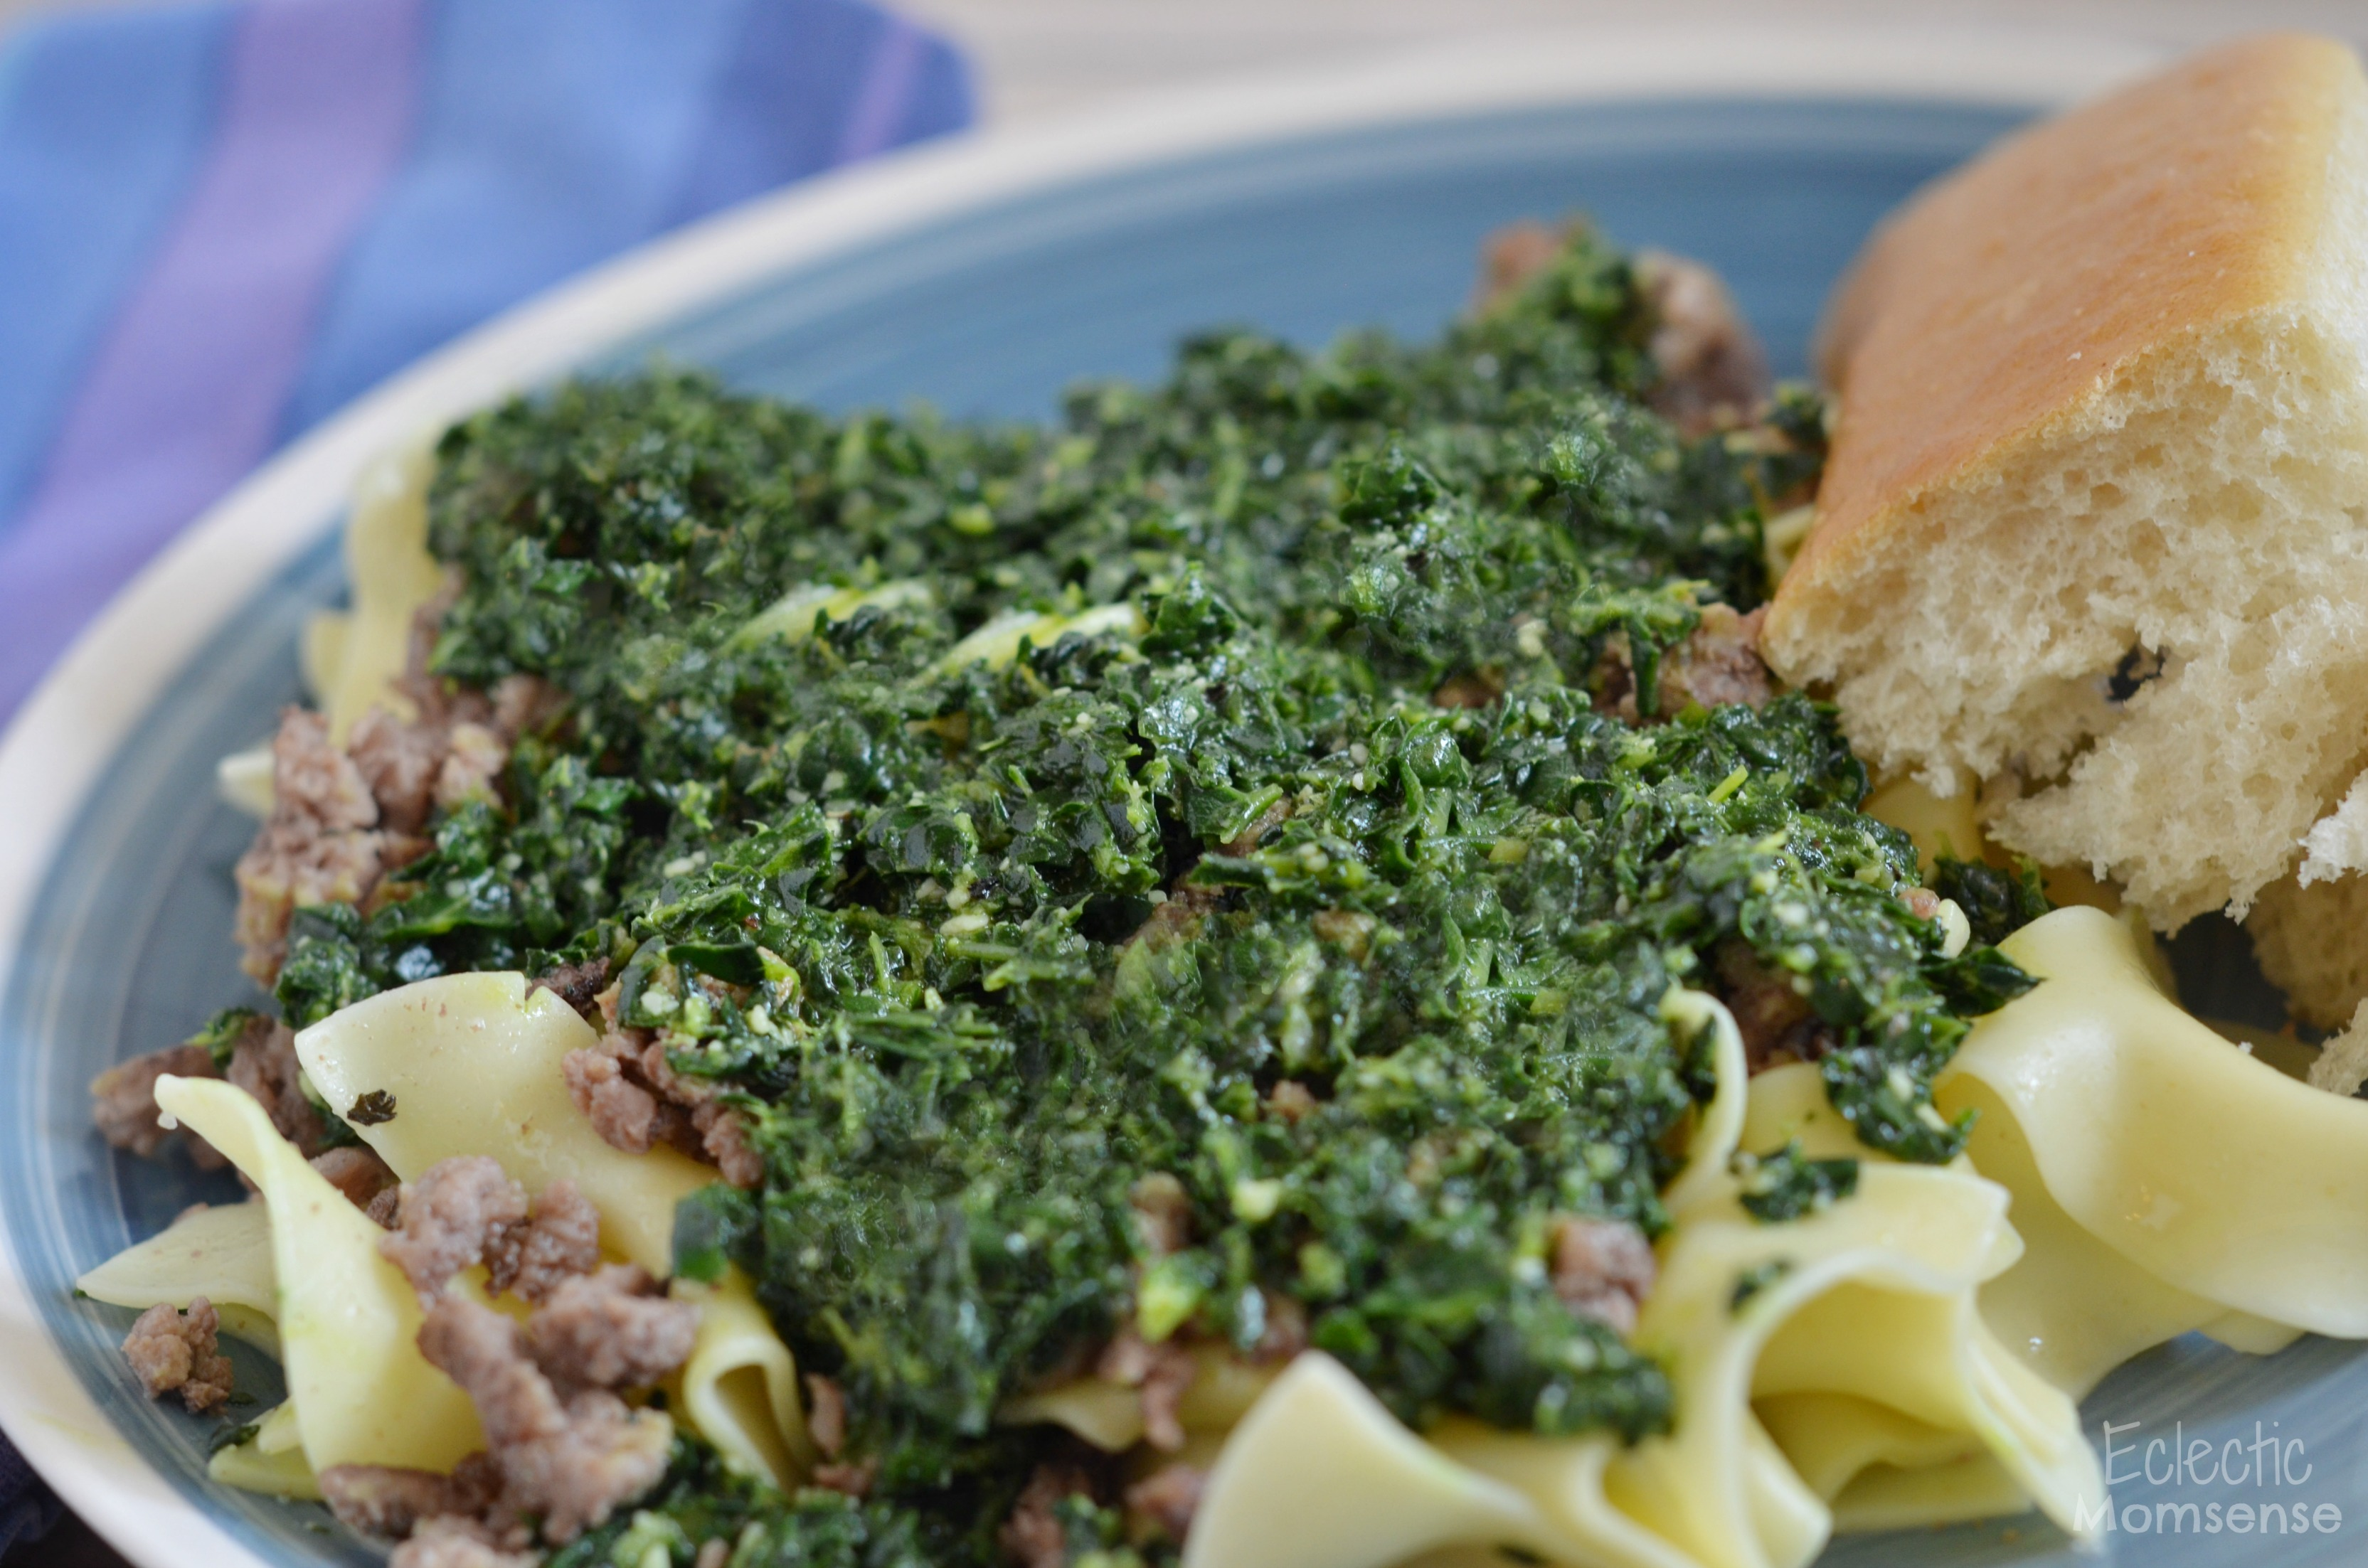 Kale Pesto with Beef Noodles